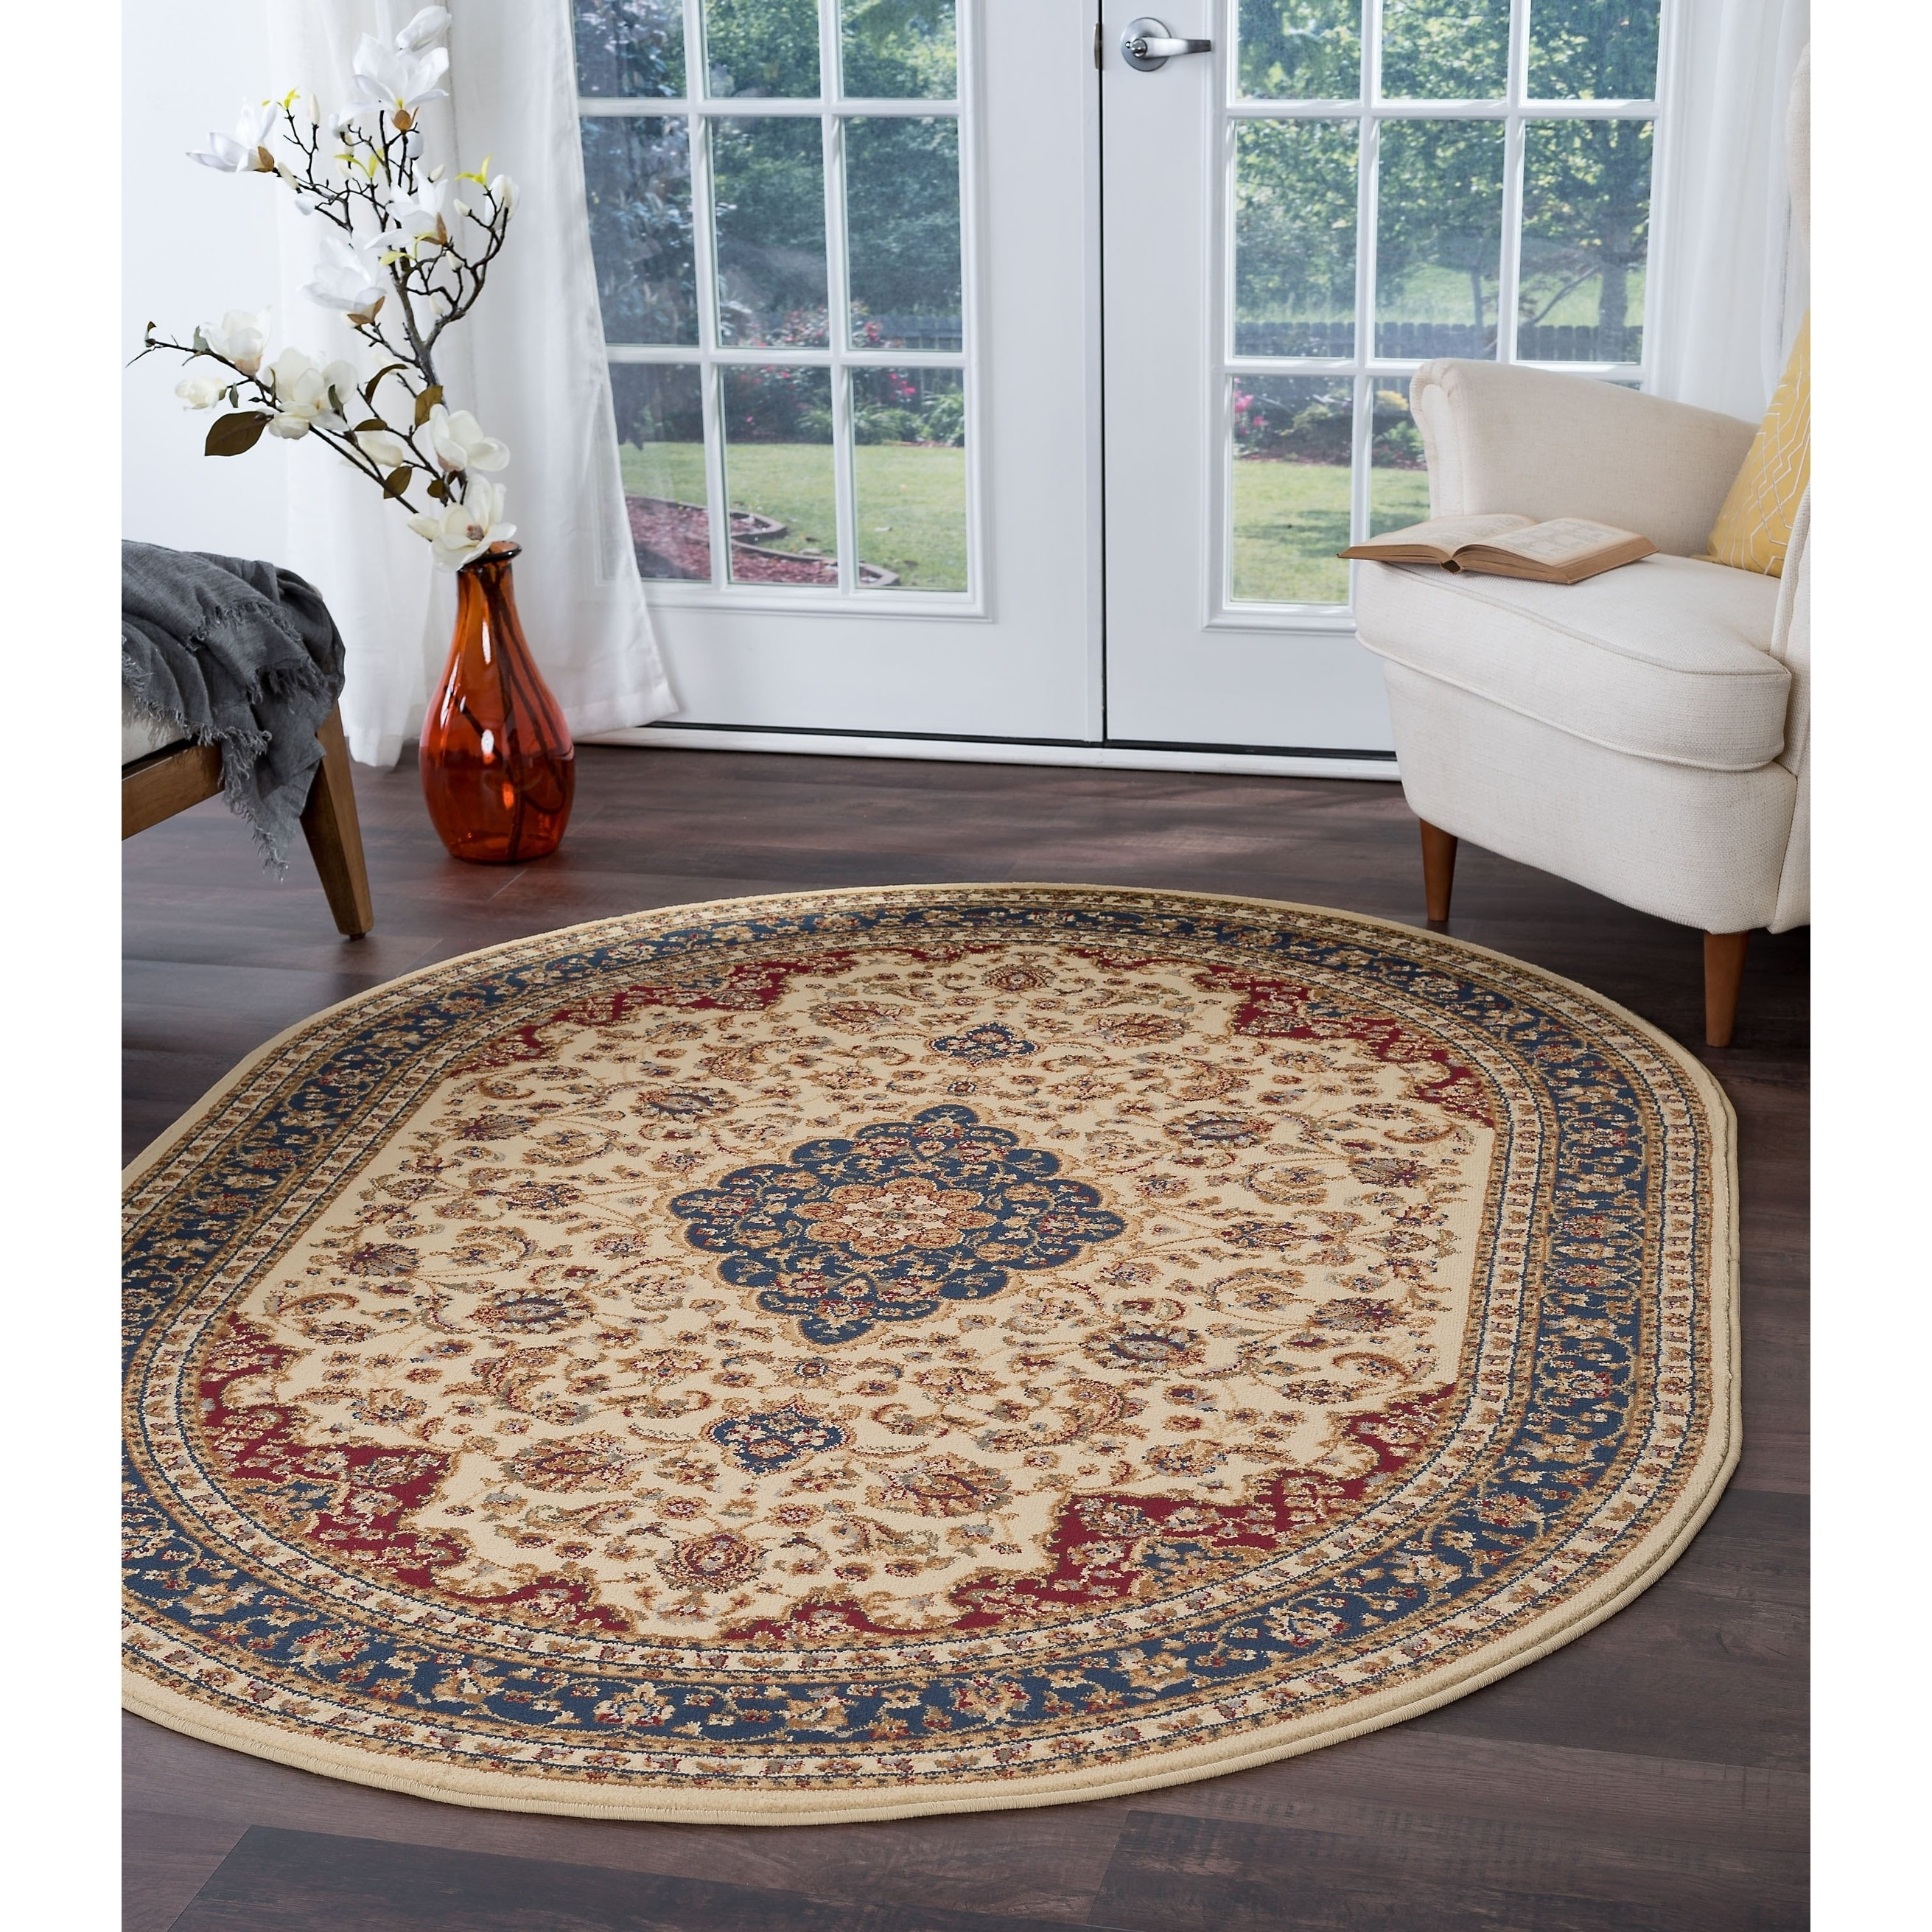 Alise rugs soho traditional oriental oval area rug 67 x 96 ivory red navy green walmart com